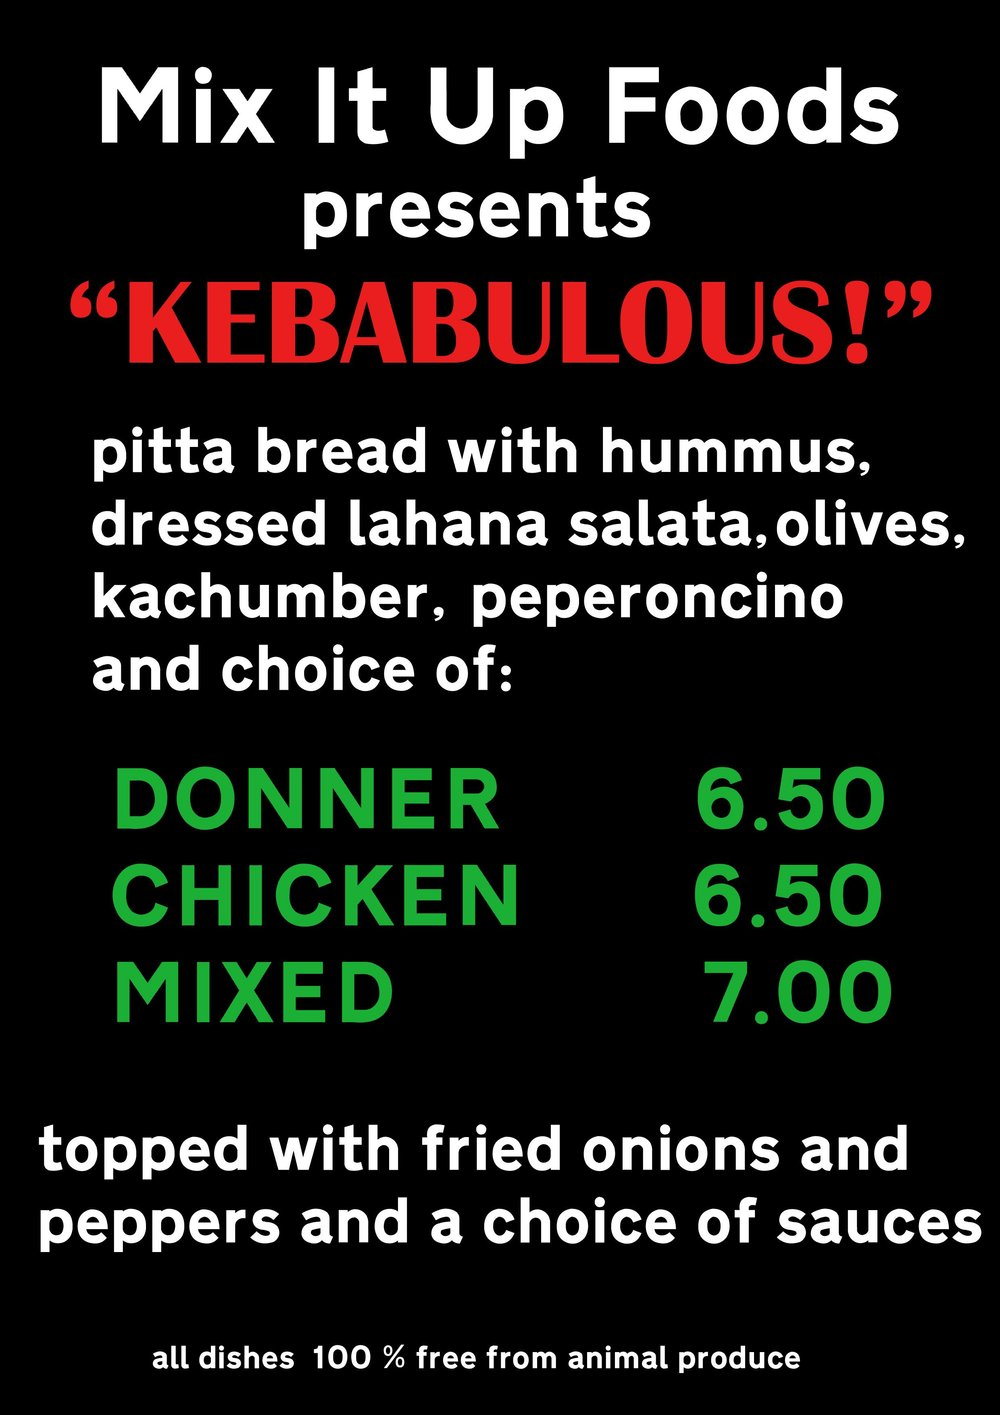 Kebabulous Menu by Mix It Up Foods